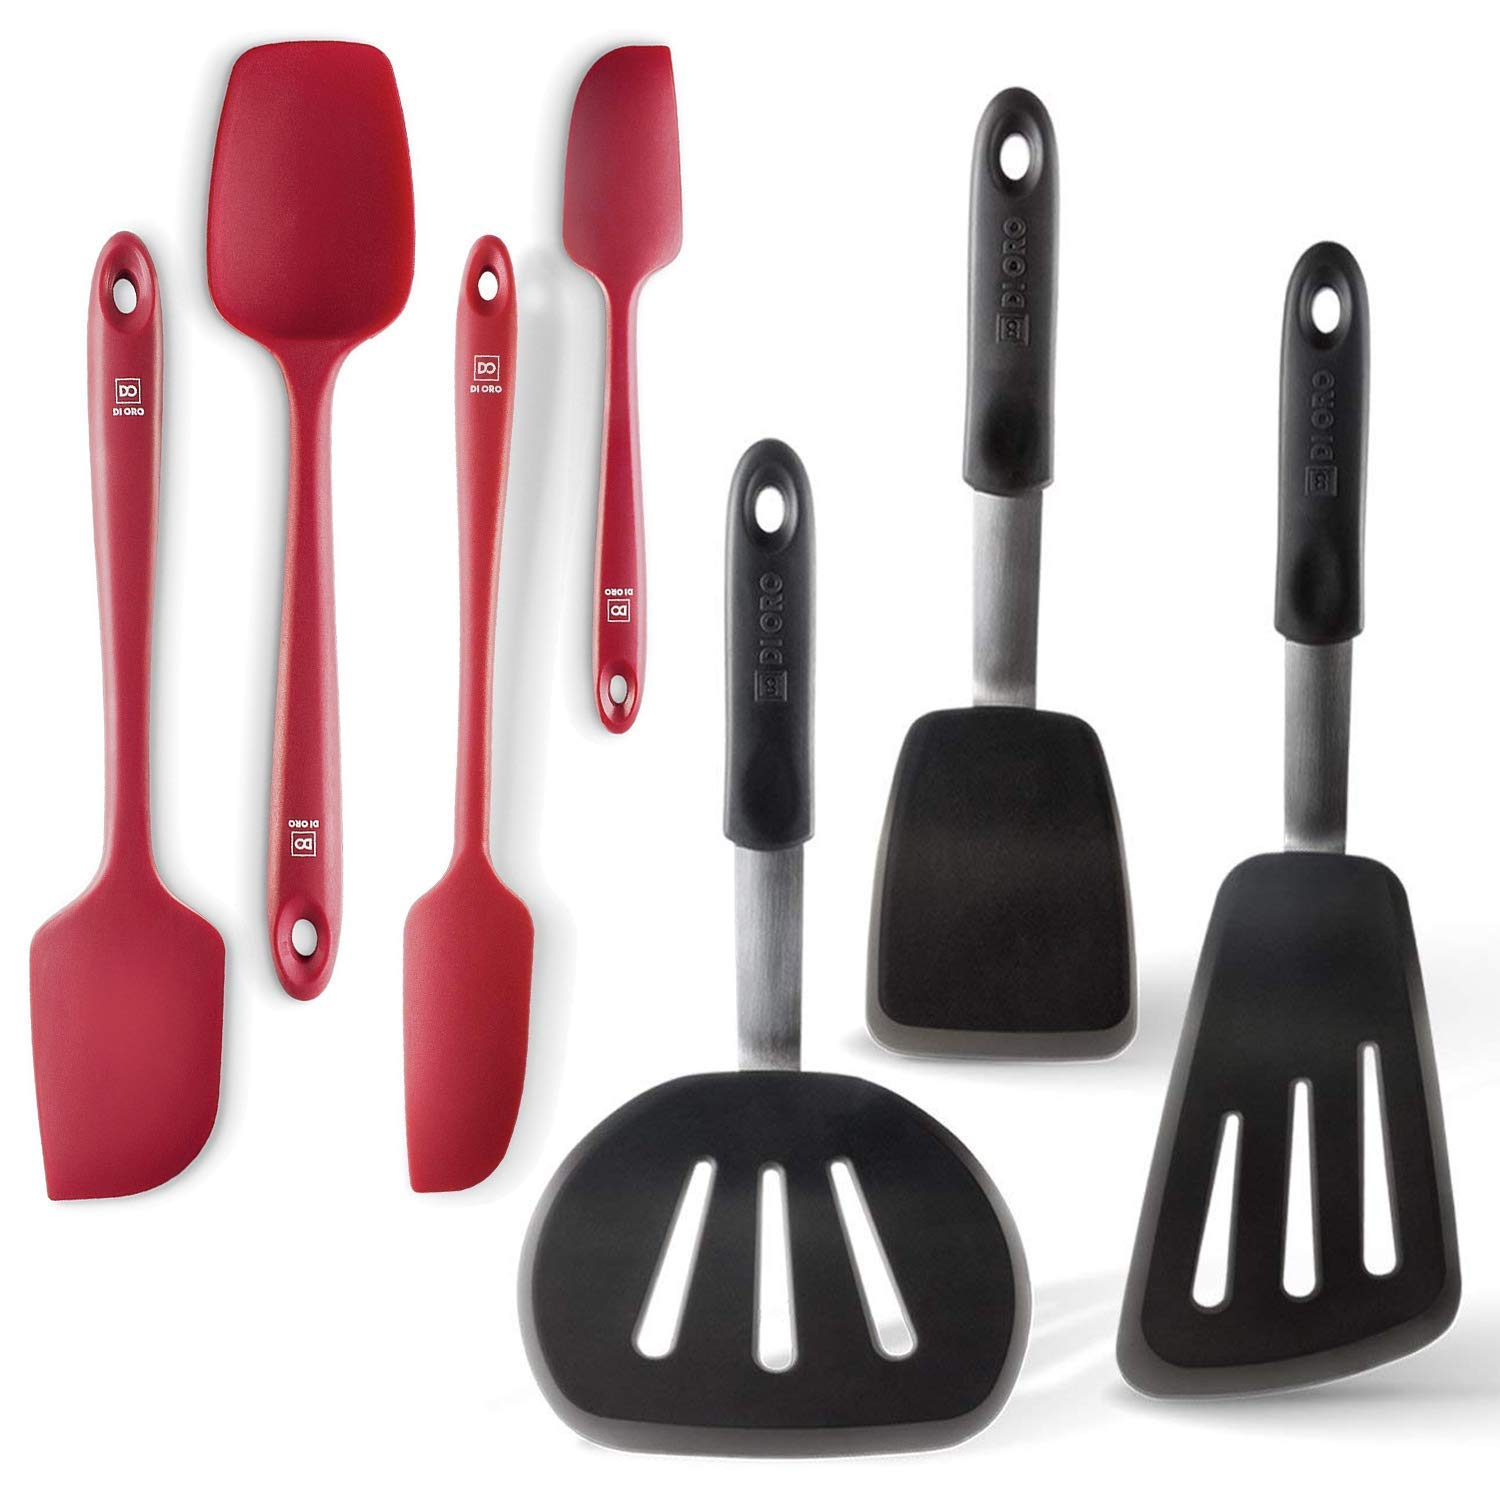 Di Oro Chef's Choice 7-Piece Silicone Spatula Set - 600F Heat-Resistant Rubber Spatulas - 3 Turner Spatulas and 4 Seamless Spatulas - Silicone Kitchen Utensil Set for Cooking and Baking (Red), 7-Pc) by di Oro Living